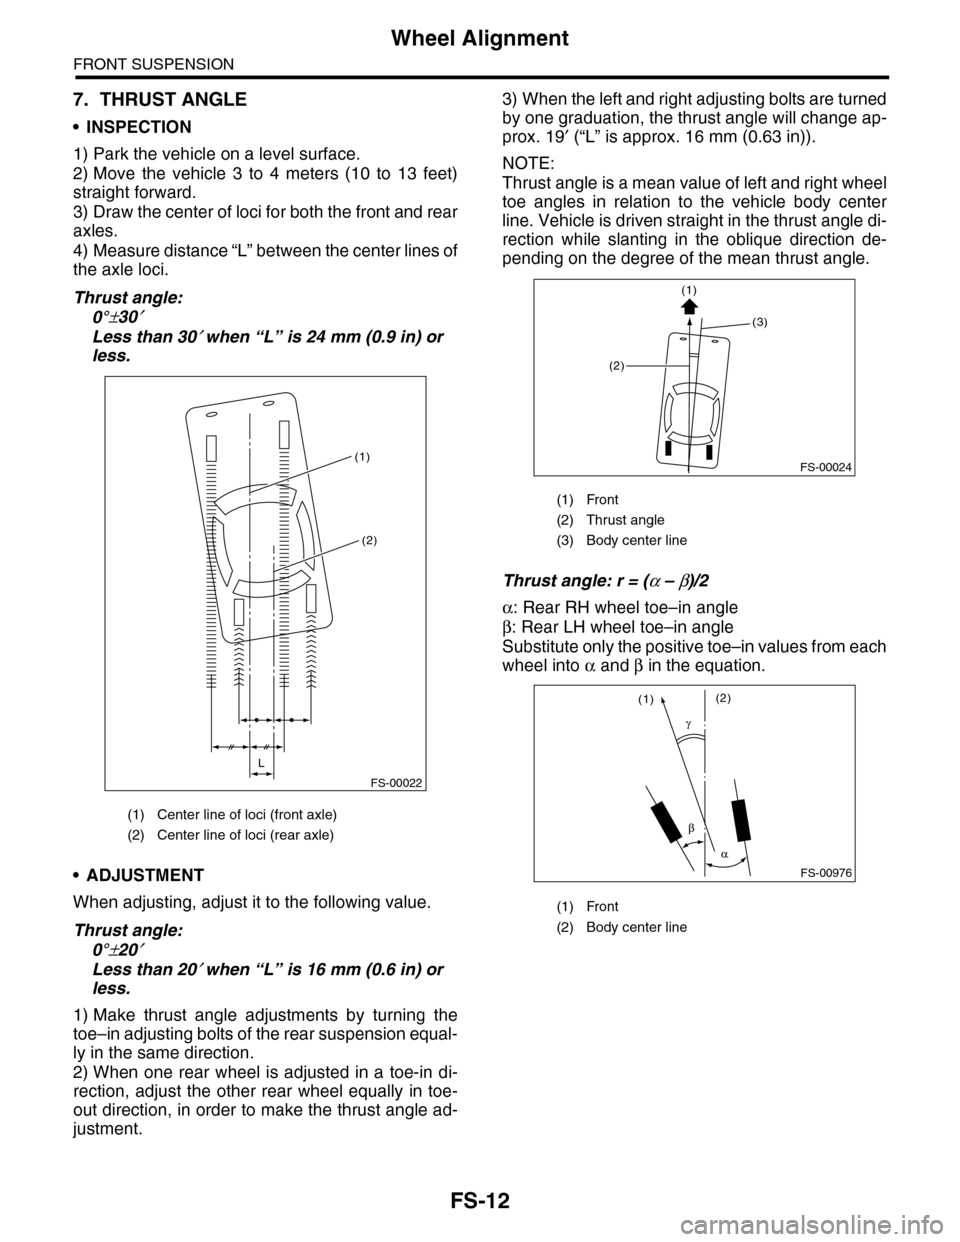 Subaru Tribeca 2009 1g Service Workshop Manual Front Axle Diagram Page 860